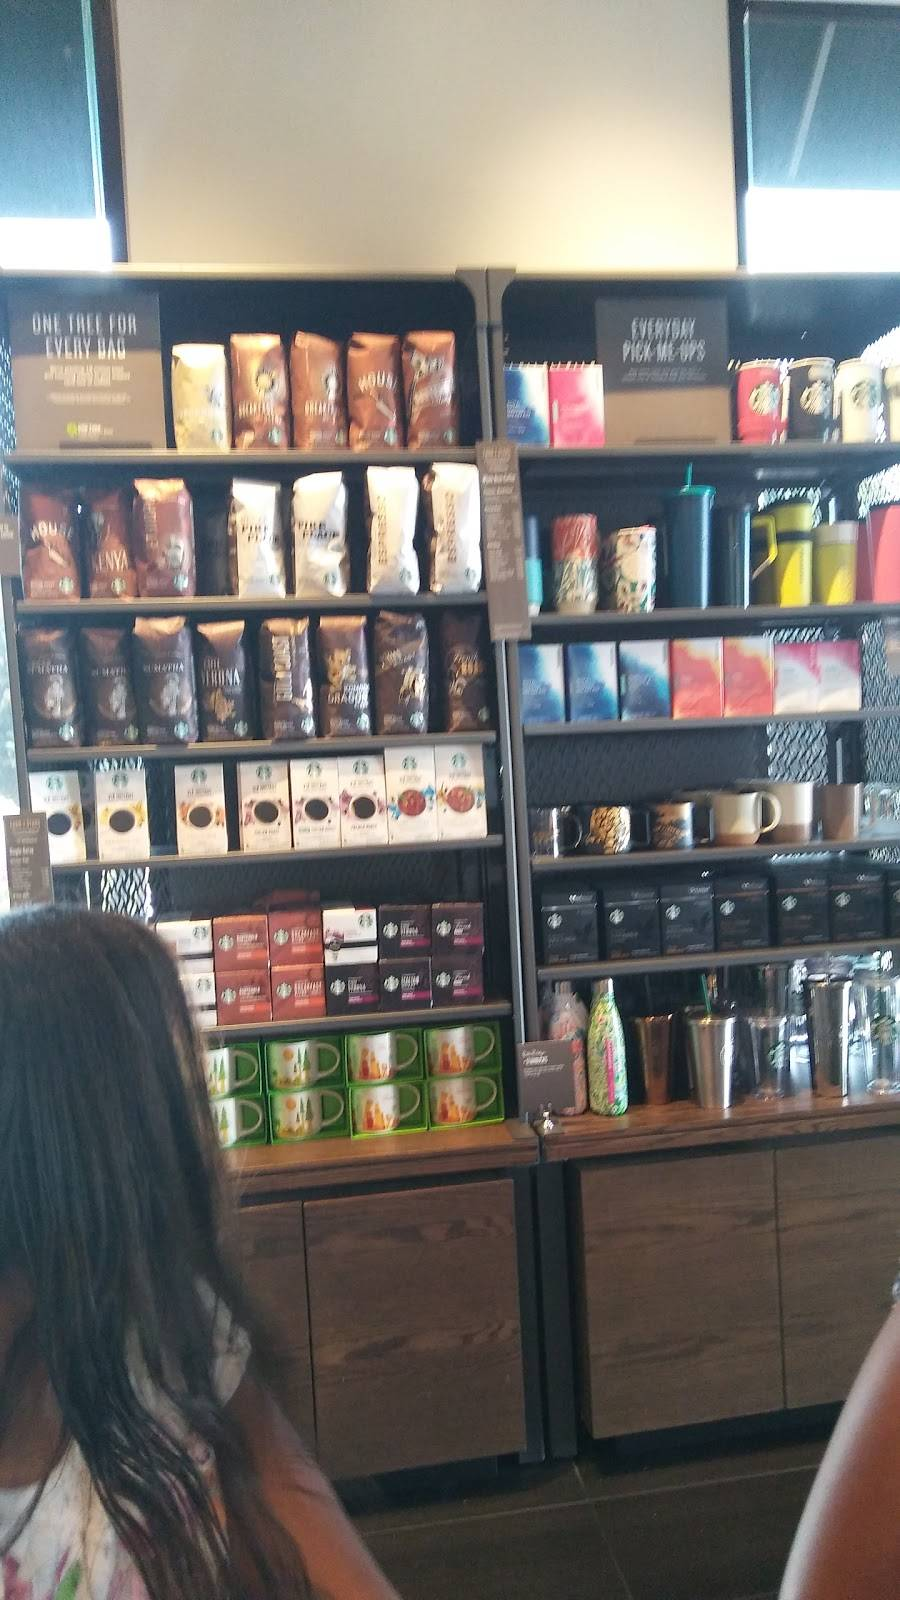 Starbucks | cafe | 791 N Archibald Ave, Ontario, CA 91764, USA | 9096056518 OR +1 909-605-6518